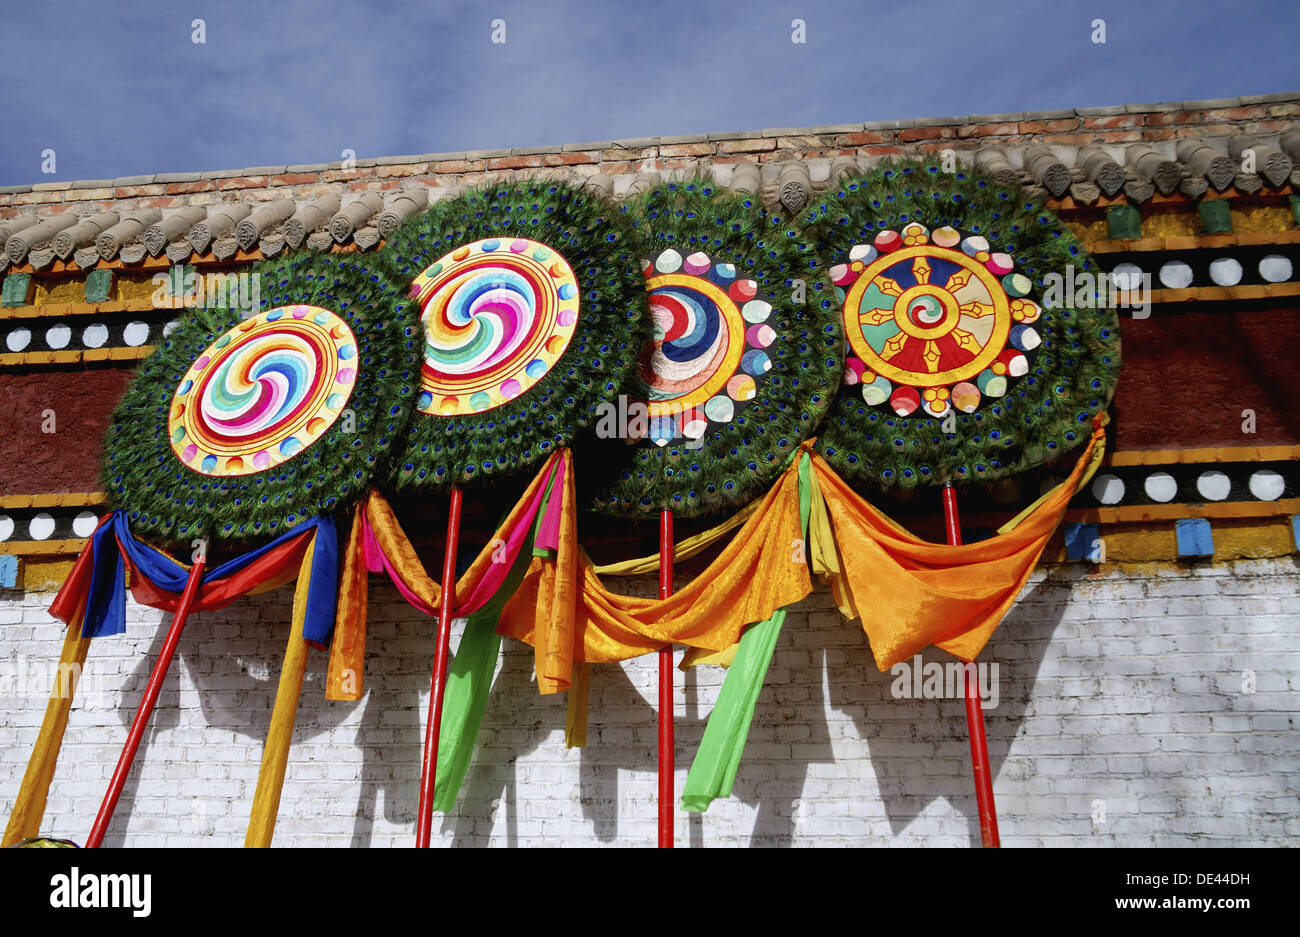 Buddhist banners with symbols and mantras such as the eight stock buddhist banners with symbols and mantras such as the eight auspicious symbols and the om mani padme hum mantra buycottarizona